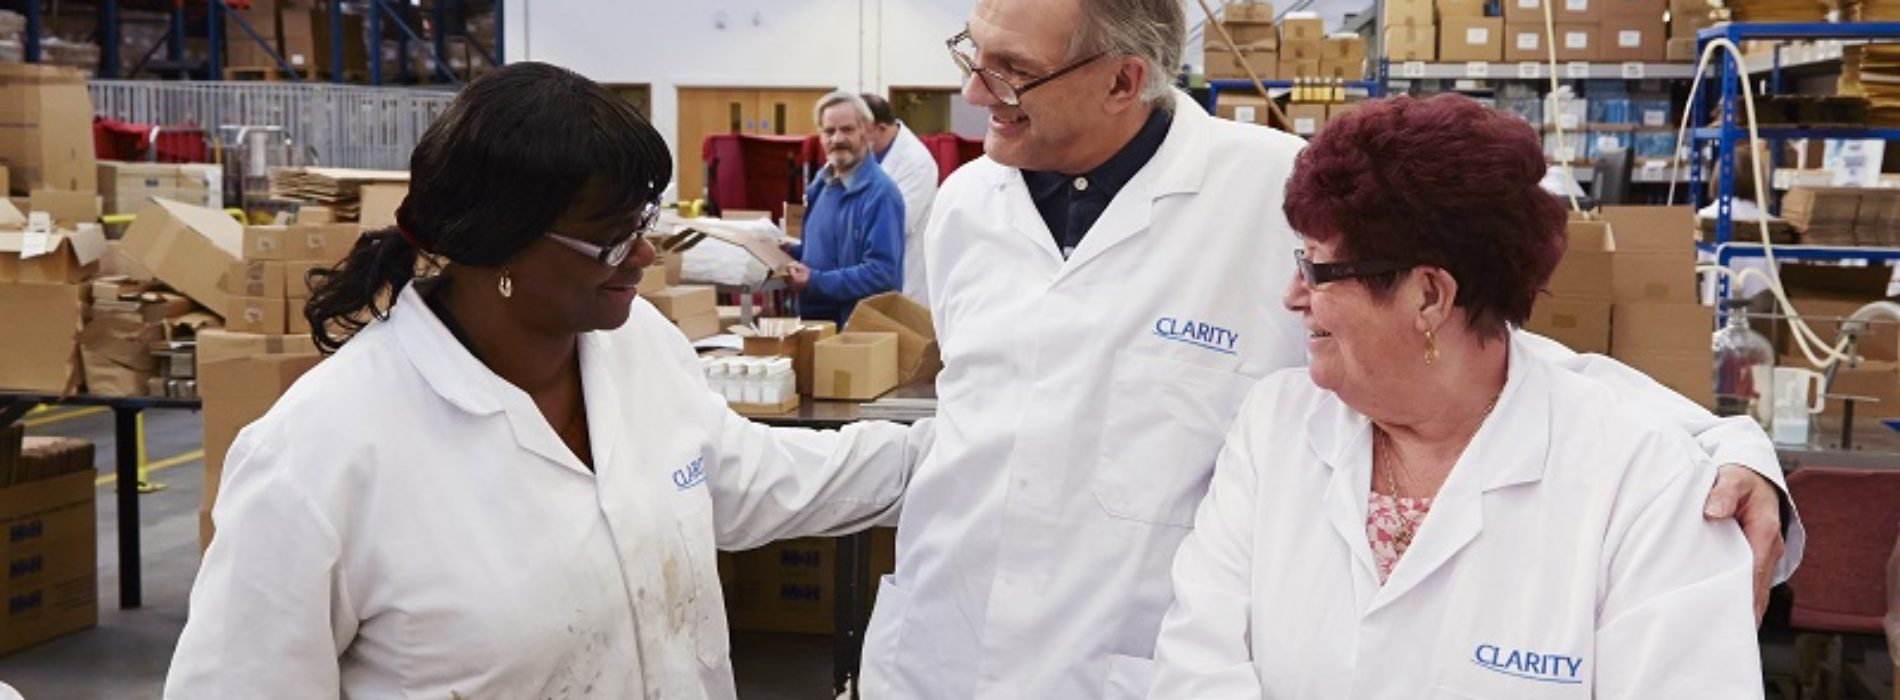 clarity  employing visually impaired and disabled people